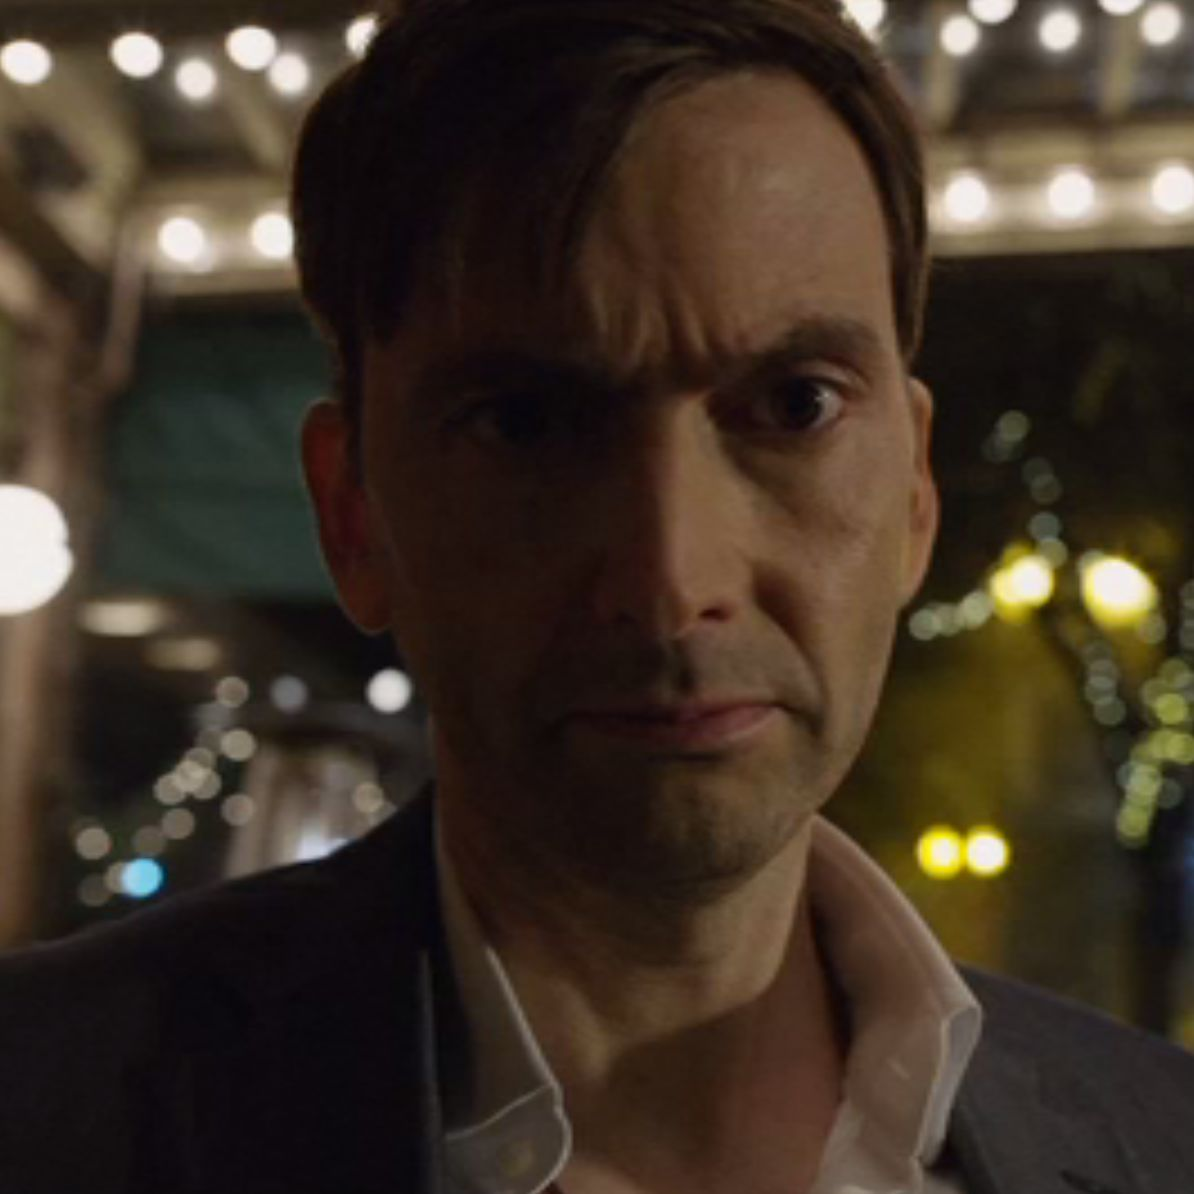 Bad samaritan david tennant 2018 trailer igub9d